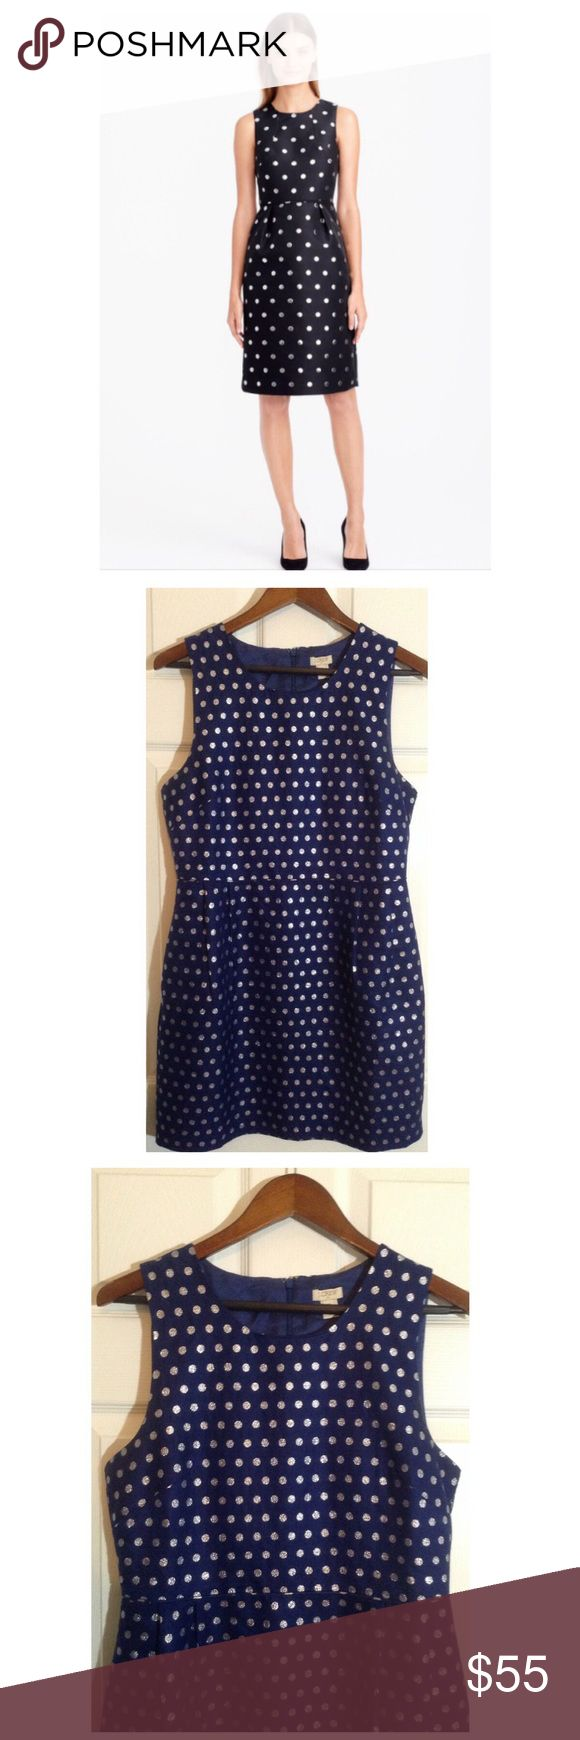 J. Crew Metallic Dot Jacquard Dress J. Crew Metallic Dot Jacquard Dress... Sparkly jacquard in an easy to wear style. Great for the holidays!!! Color is navy blue. J. Crew Dresses